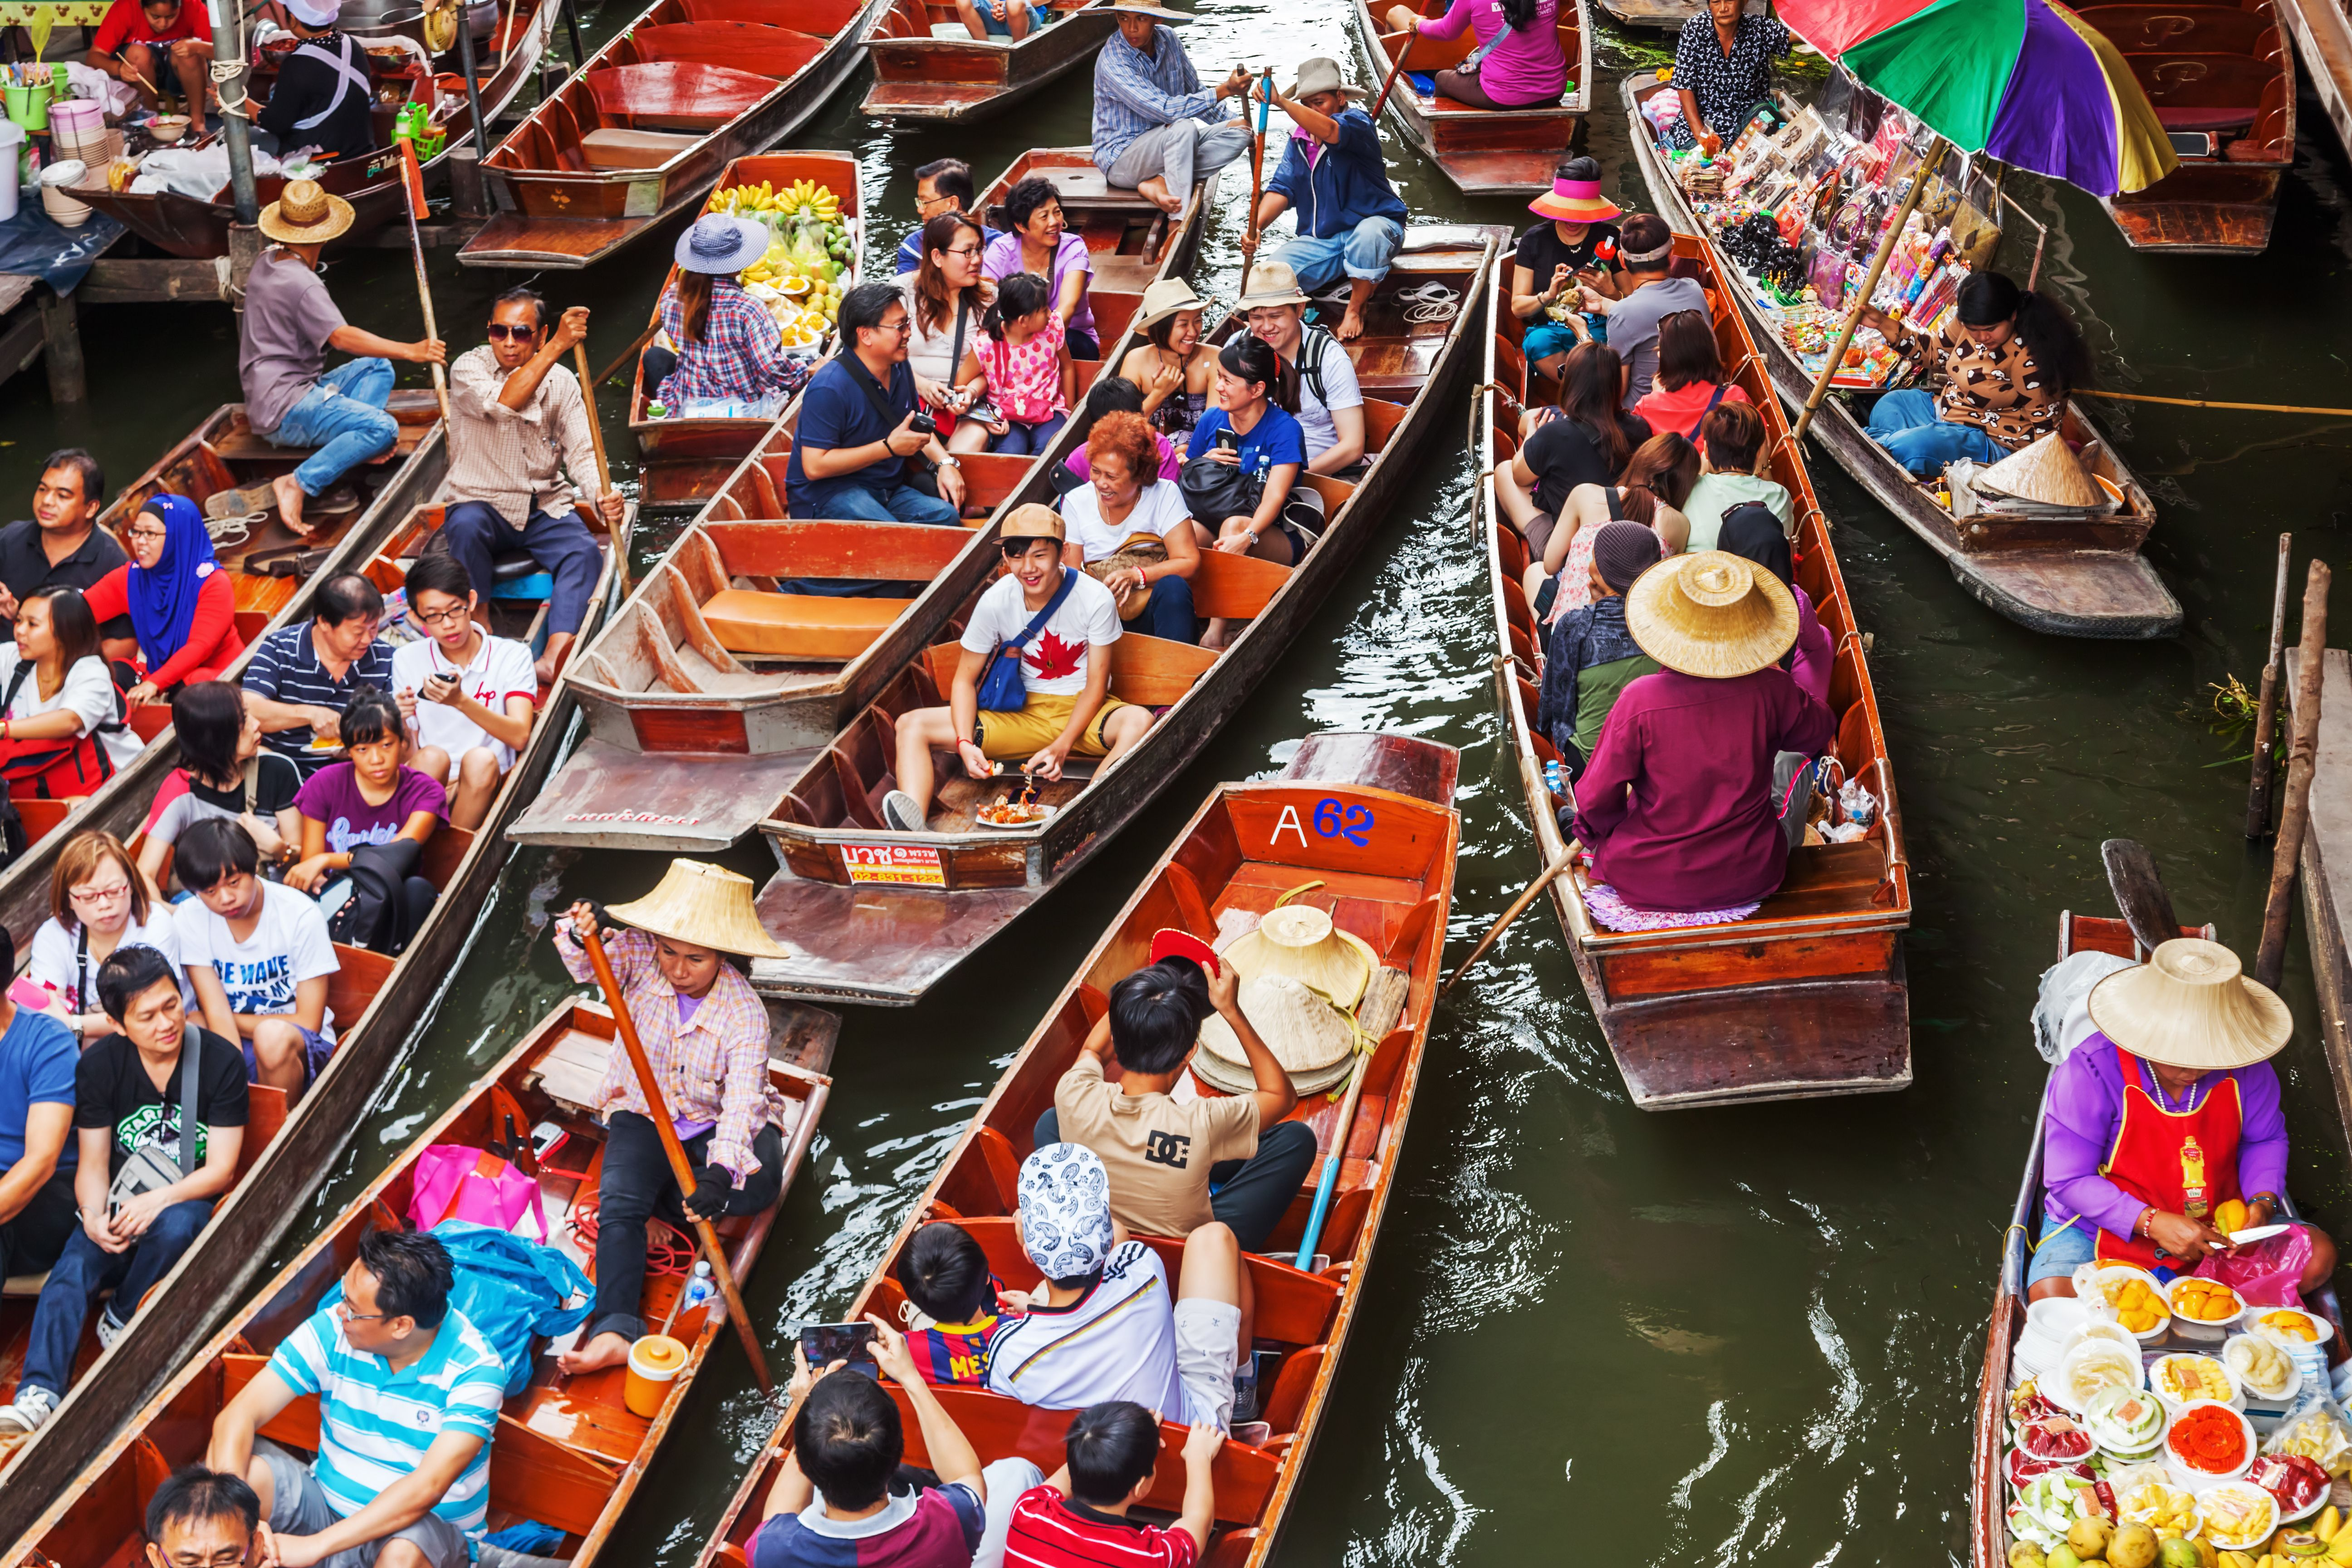 Crowded boats at the floating market in Bankgok